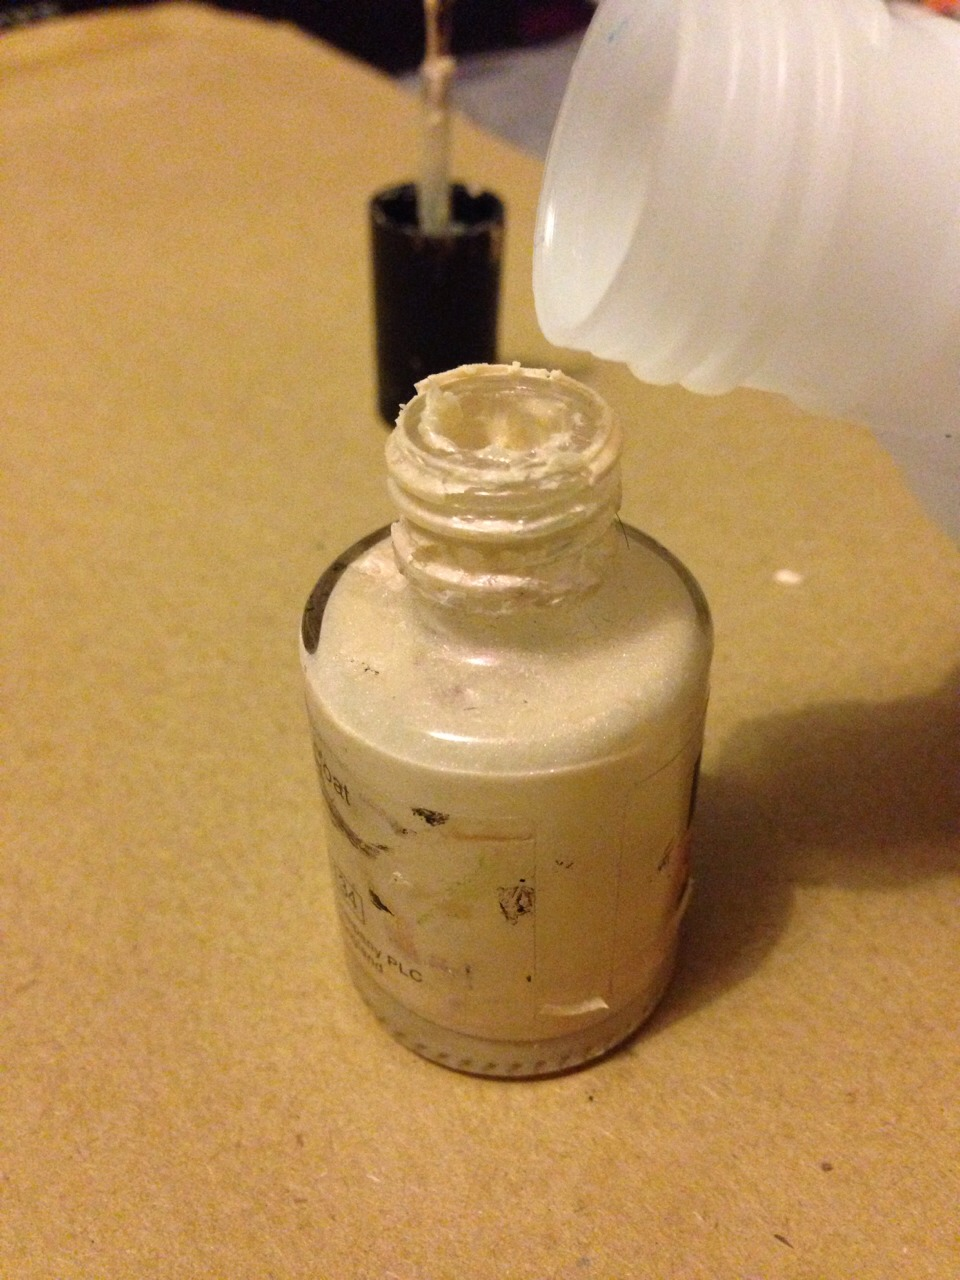 Get any nail polish remover a pour a small amount into the varnish pot, shake well.